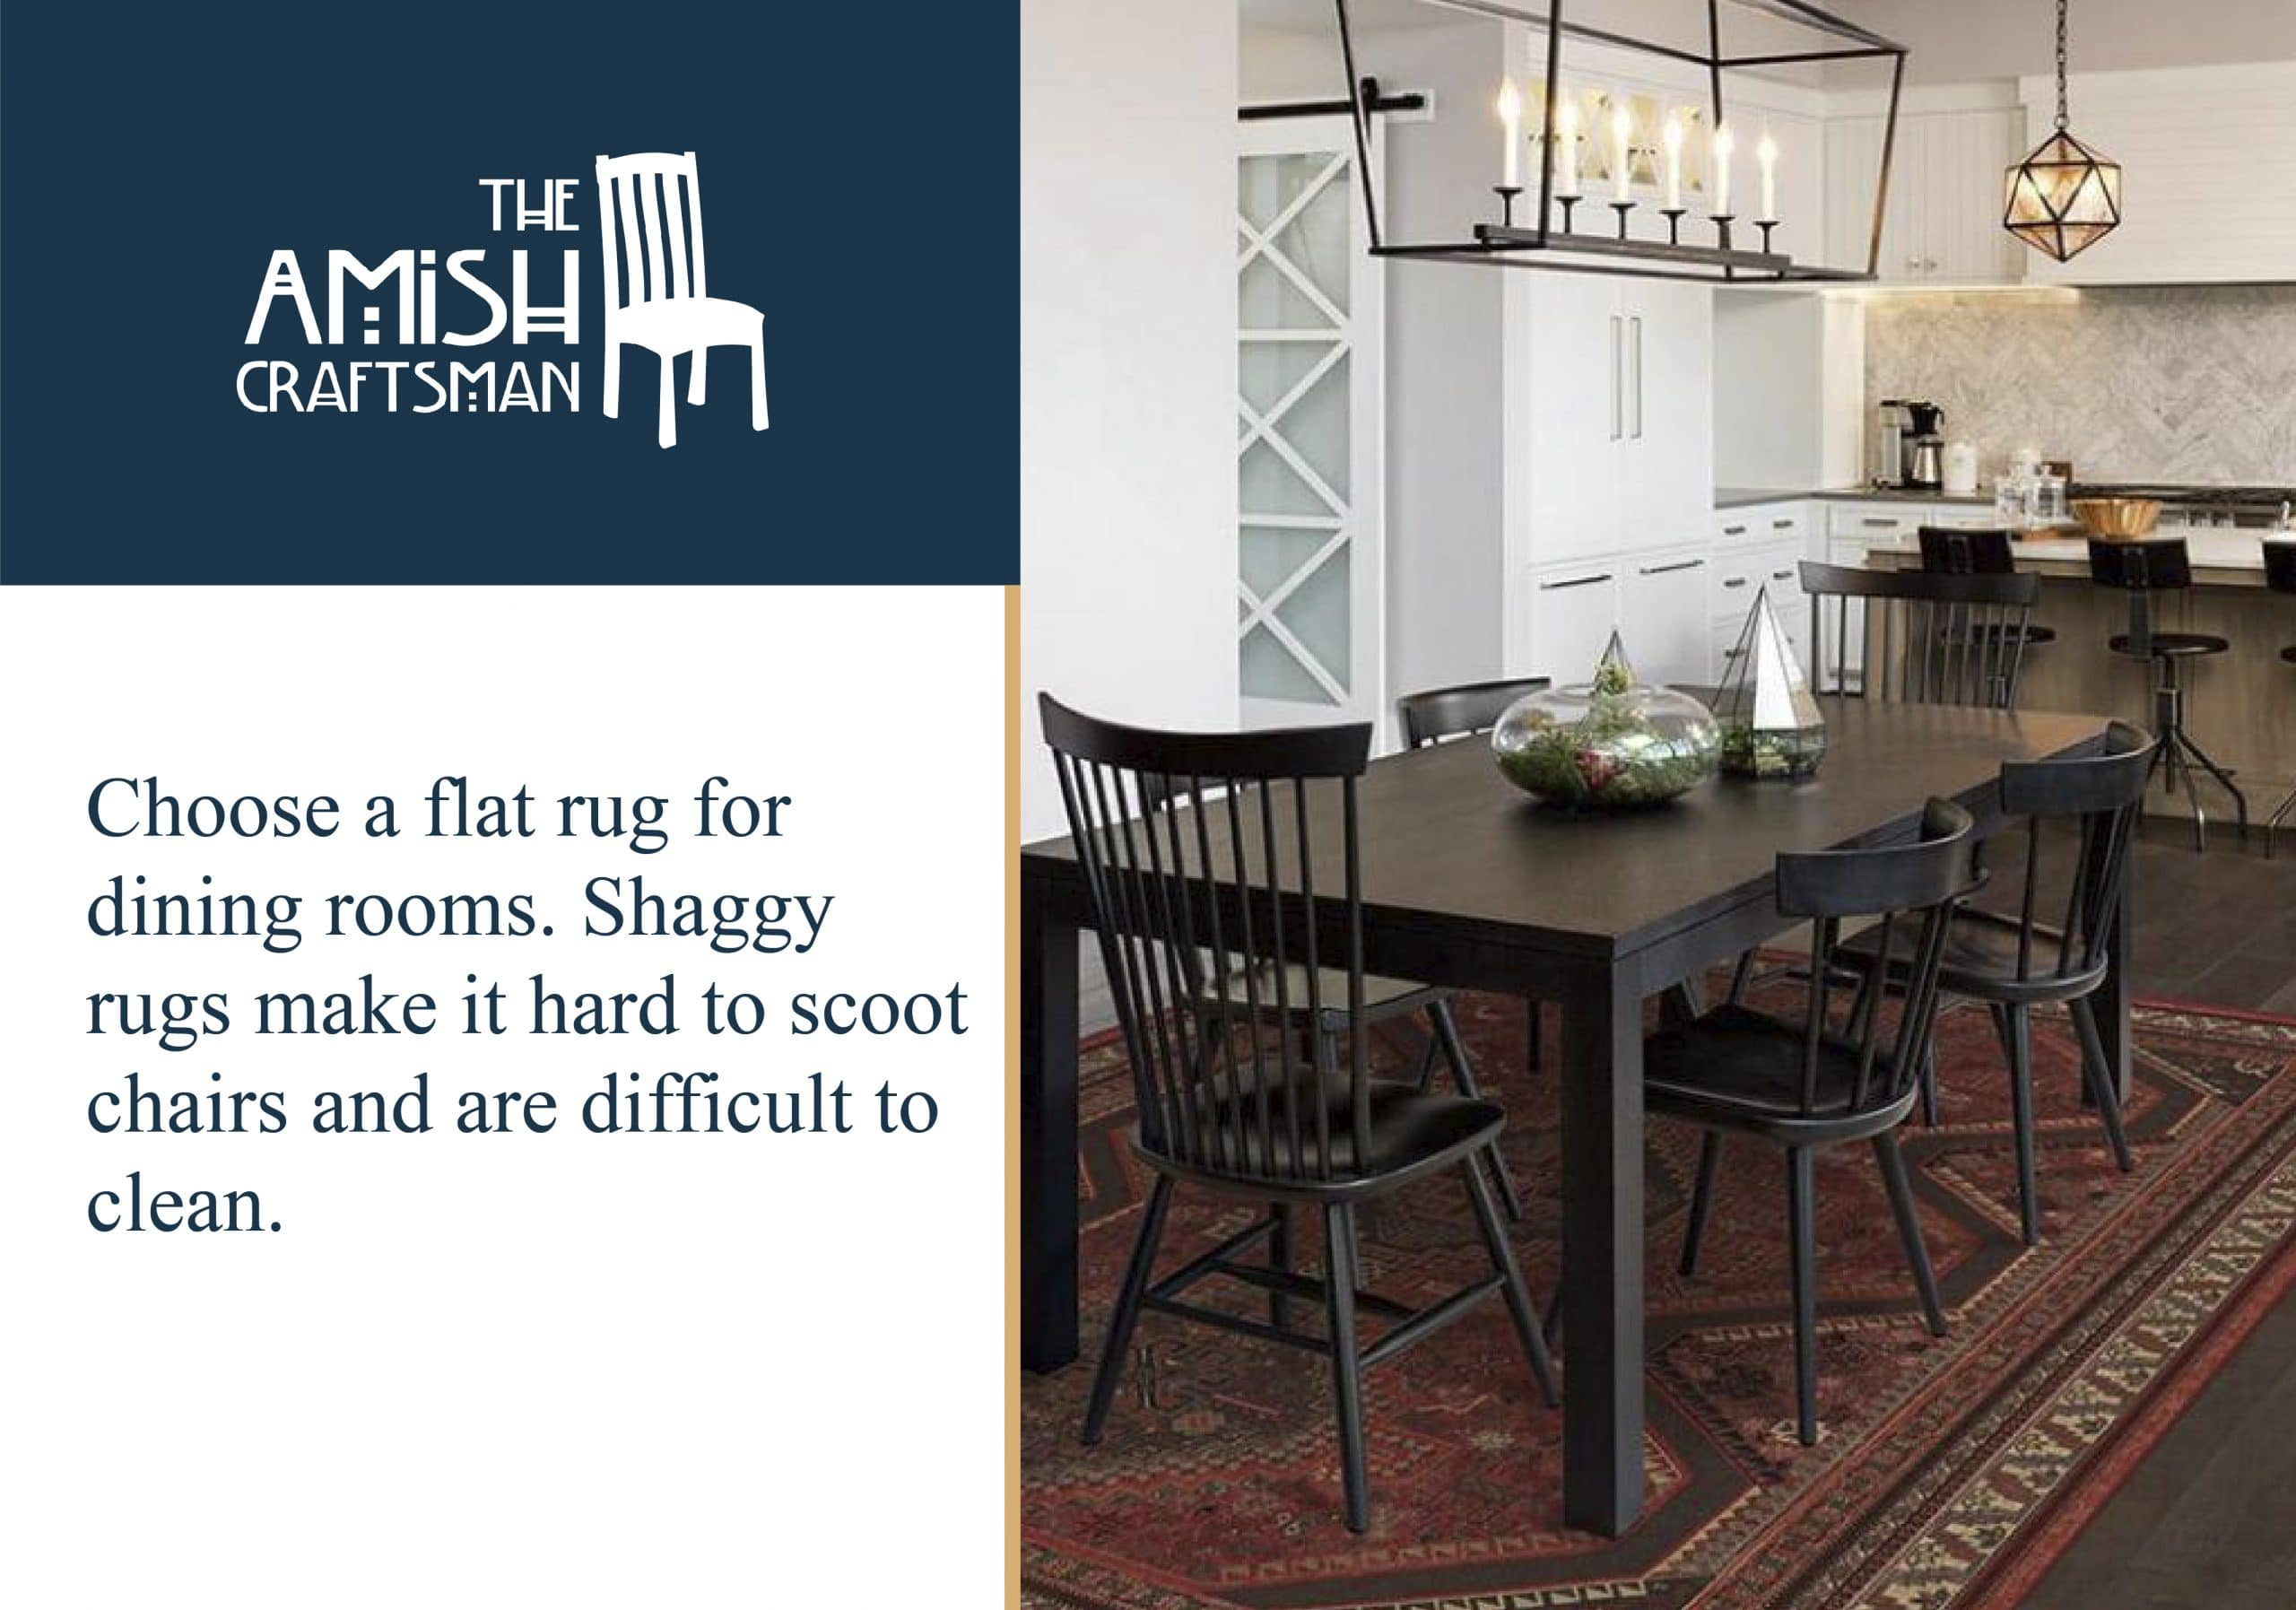 flat rugs work best in dining rooms